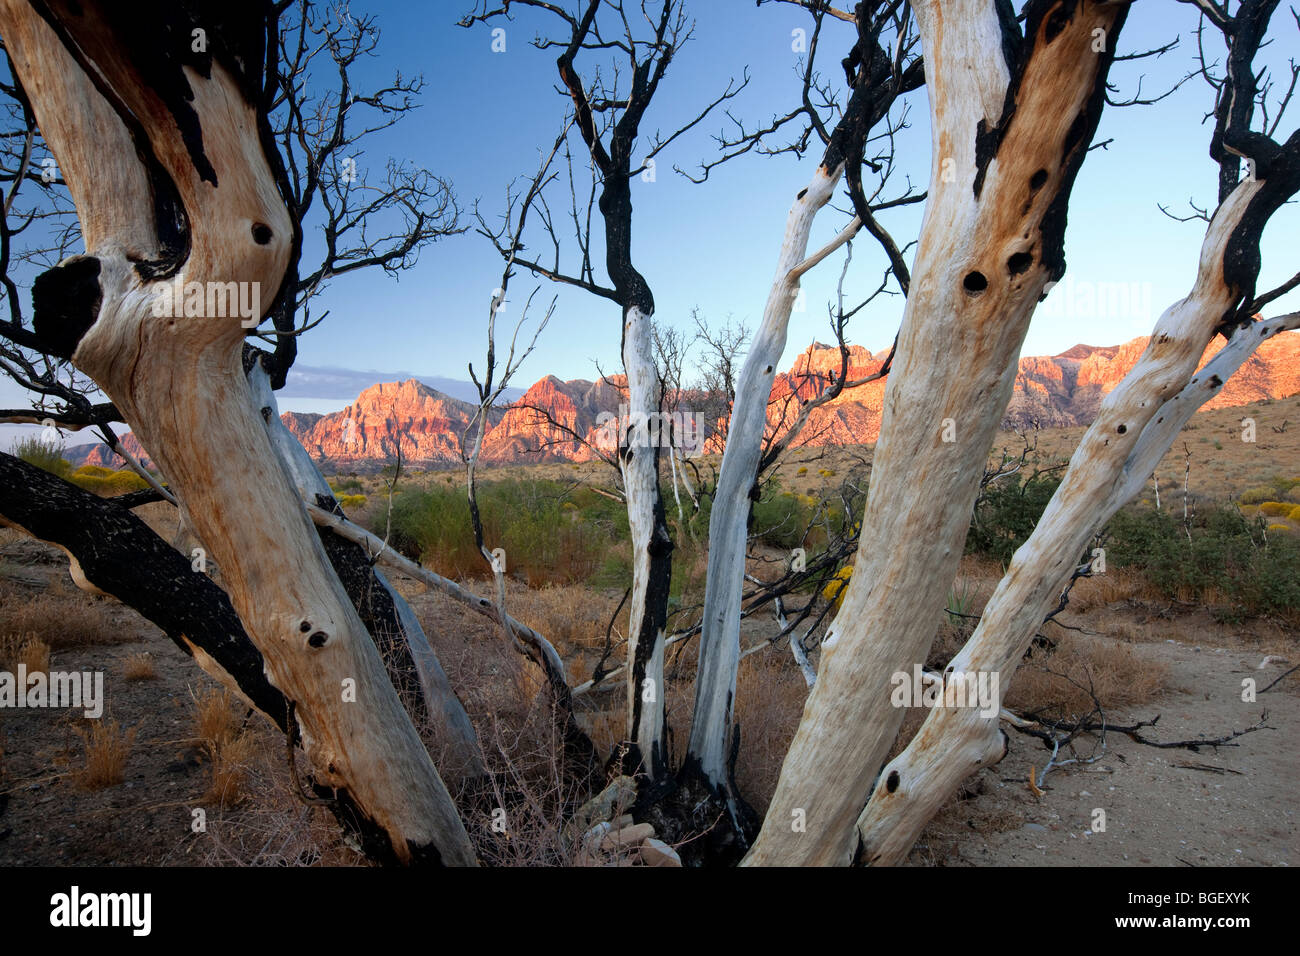 Burned tree and rock formations in Red Rock Canyon National Conservation Area, Nevada - Stock Image